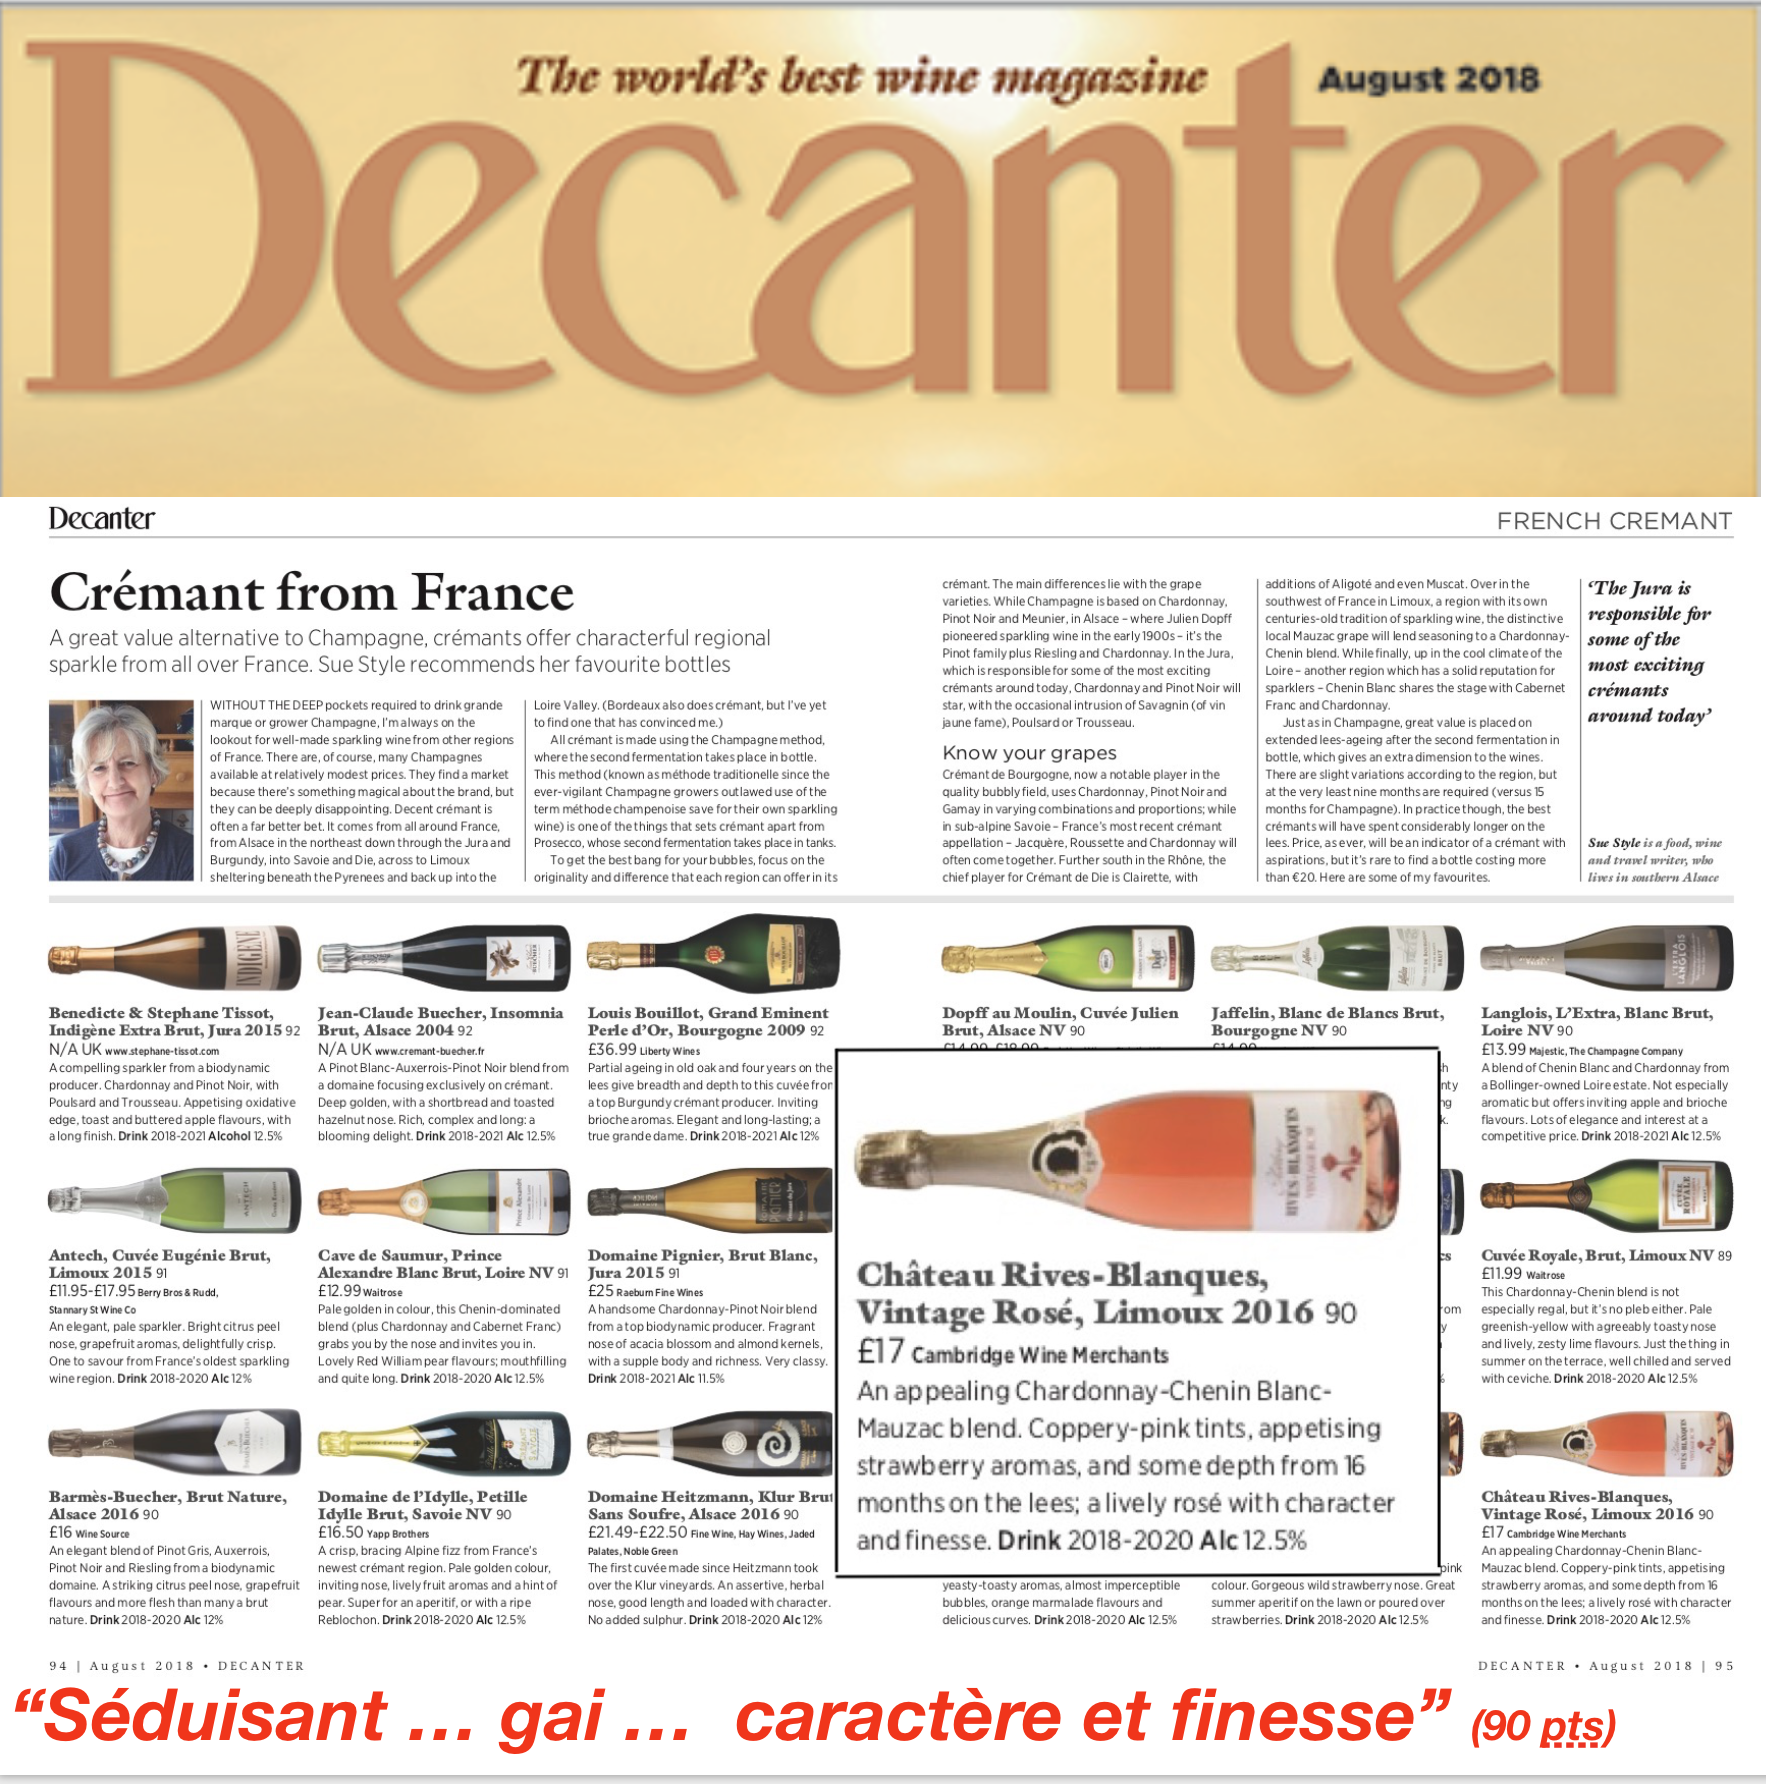 Best Pinot Noir 2020 August 2018: Decanter magazine awards 90 points to Vintage Rose in